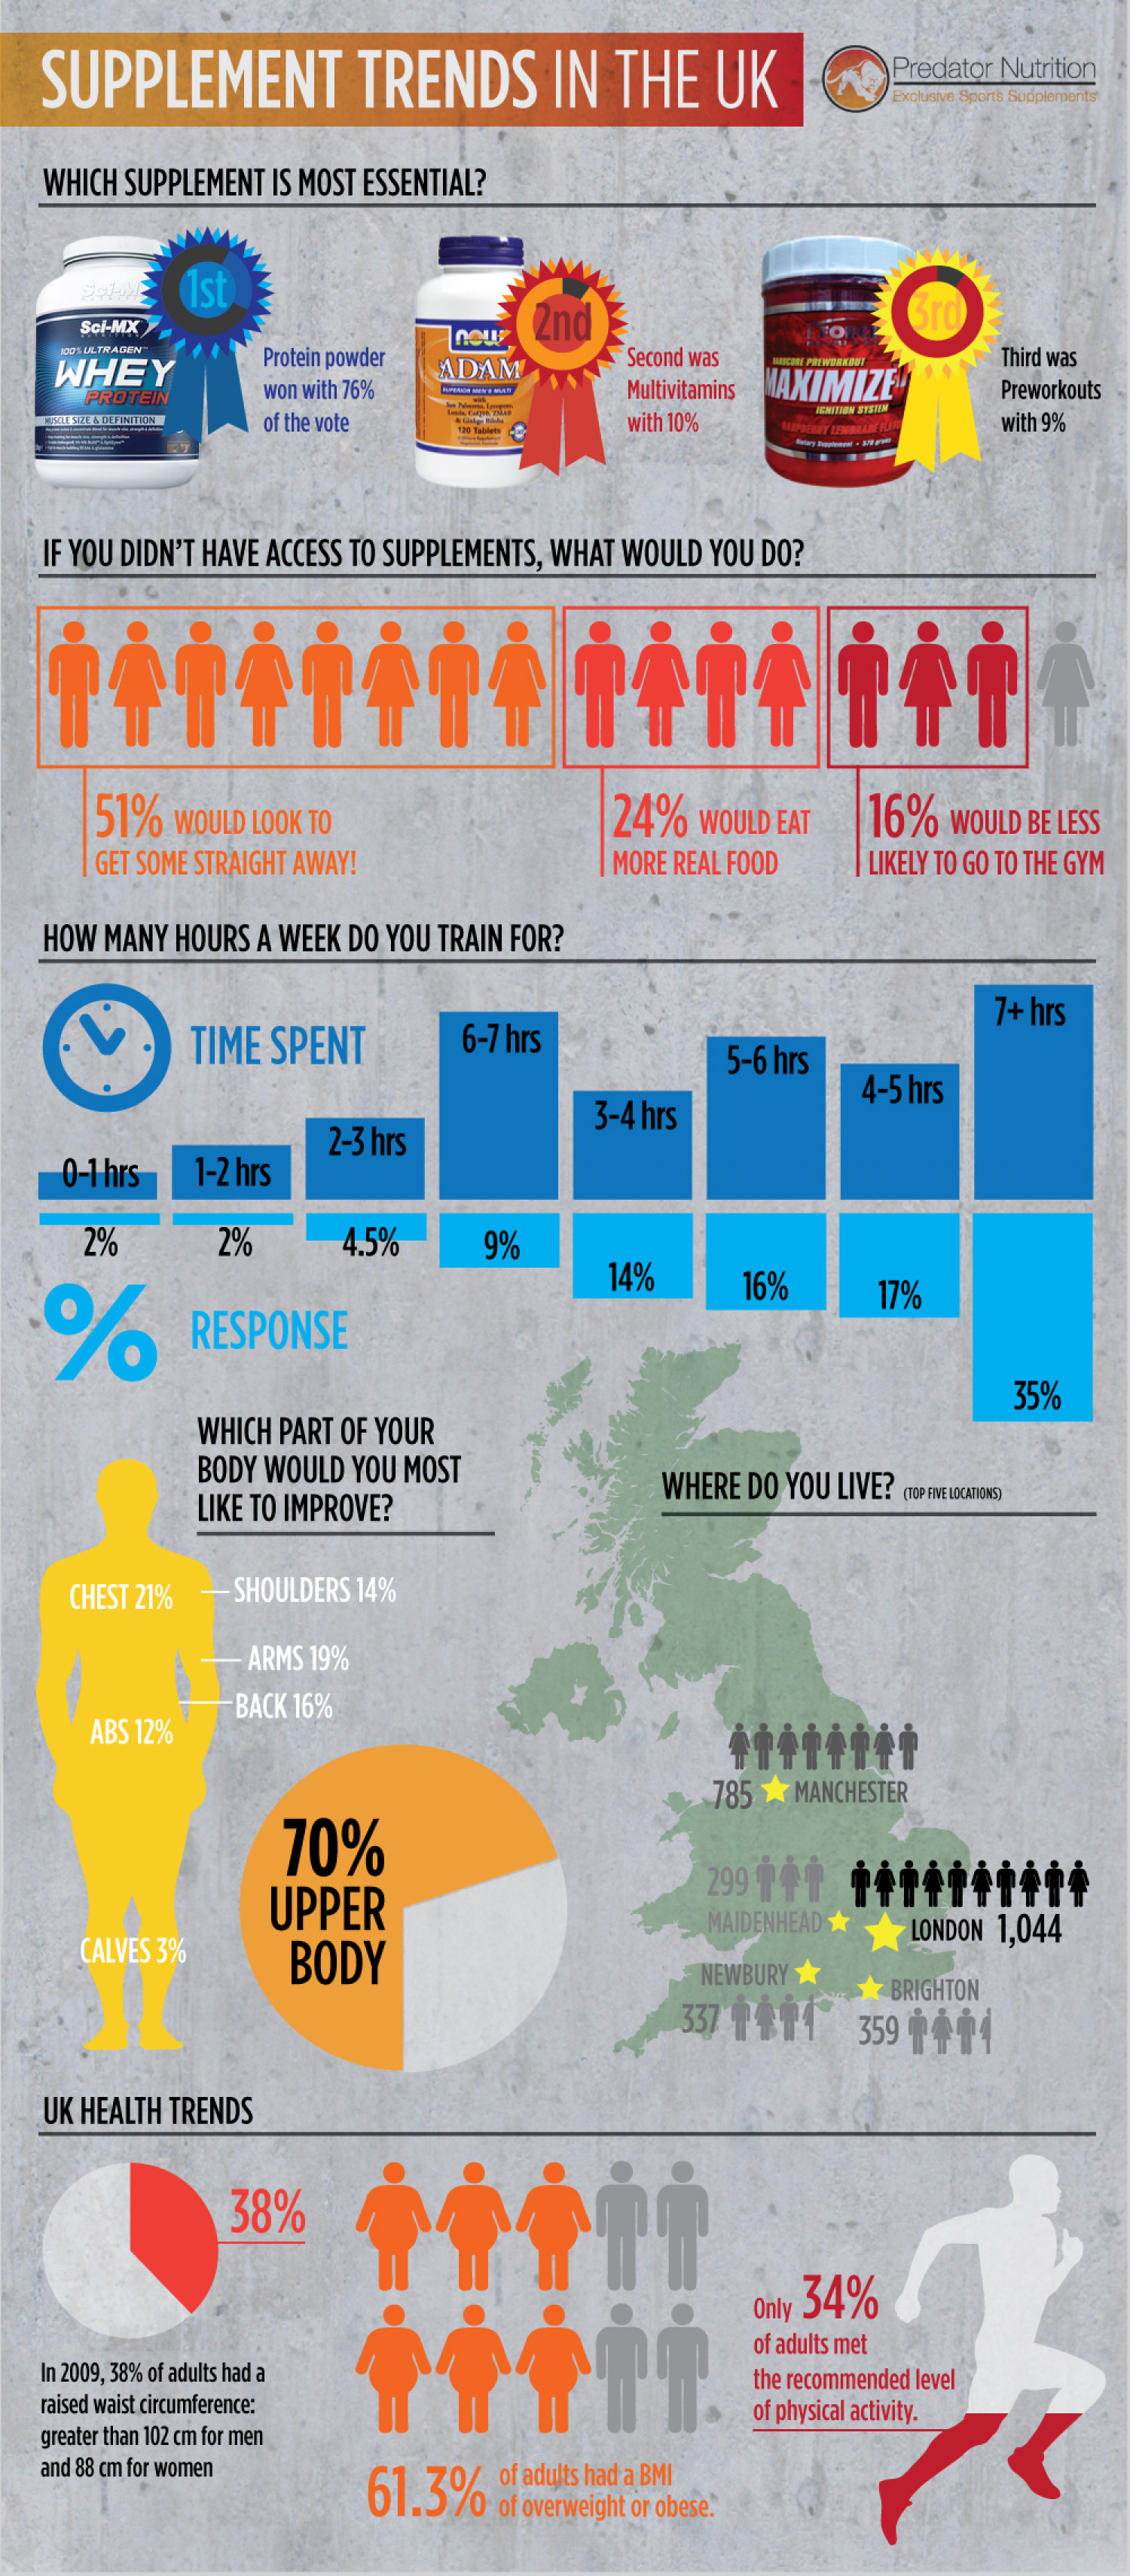 Supplement Trends in the UK  Infographic